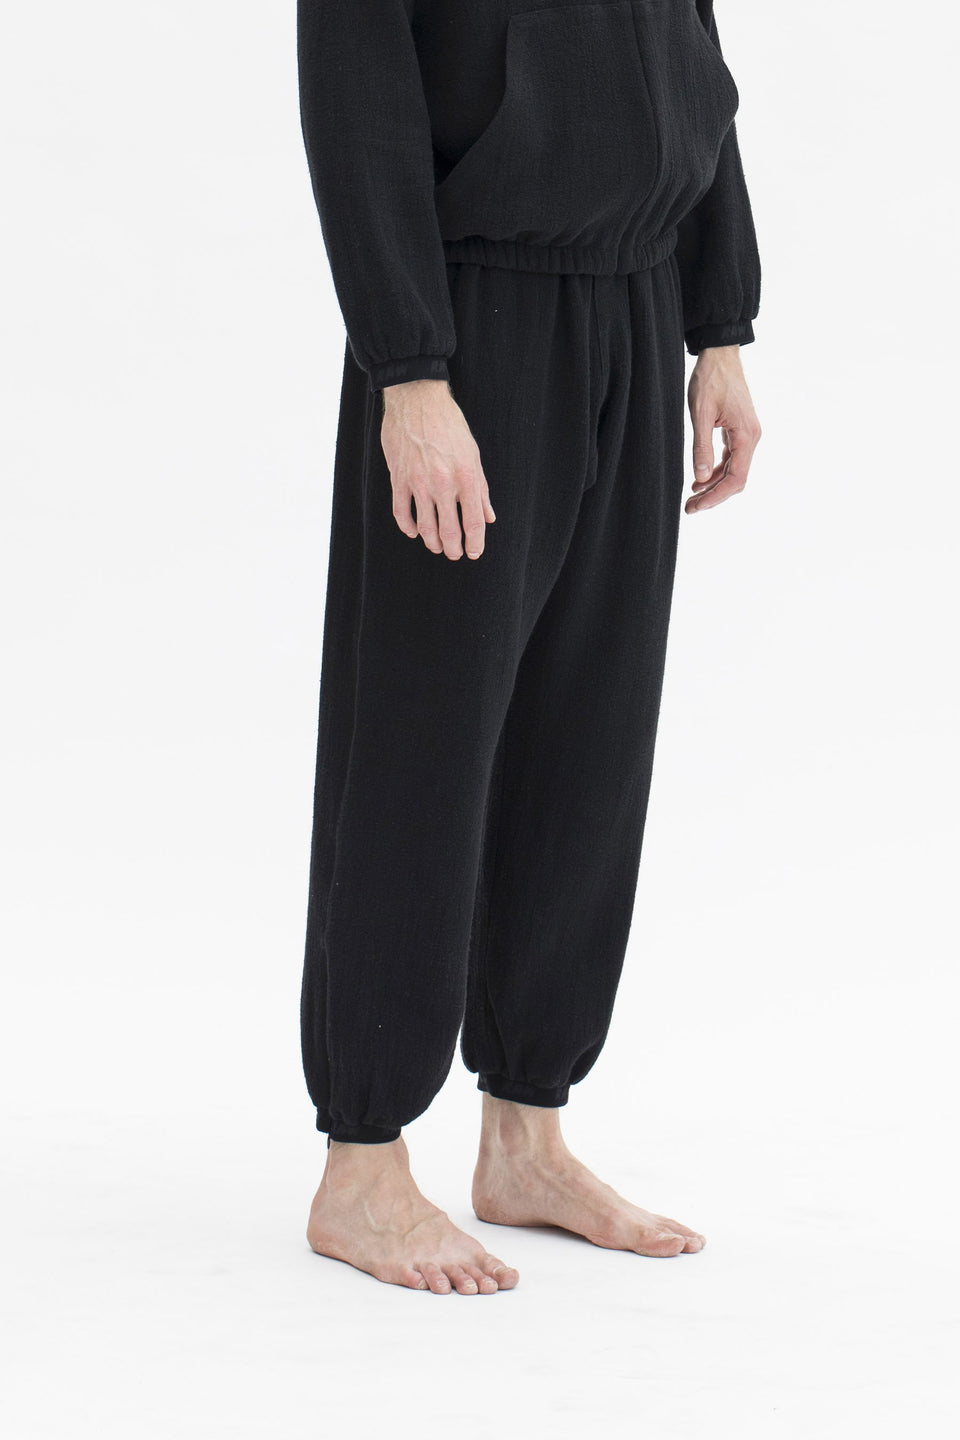 RAW Men Sweatpants Black